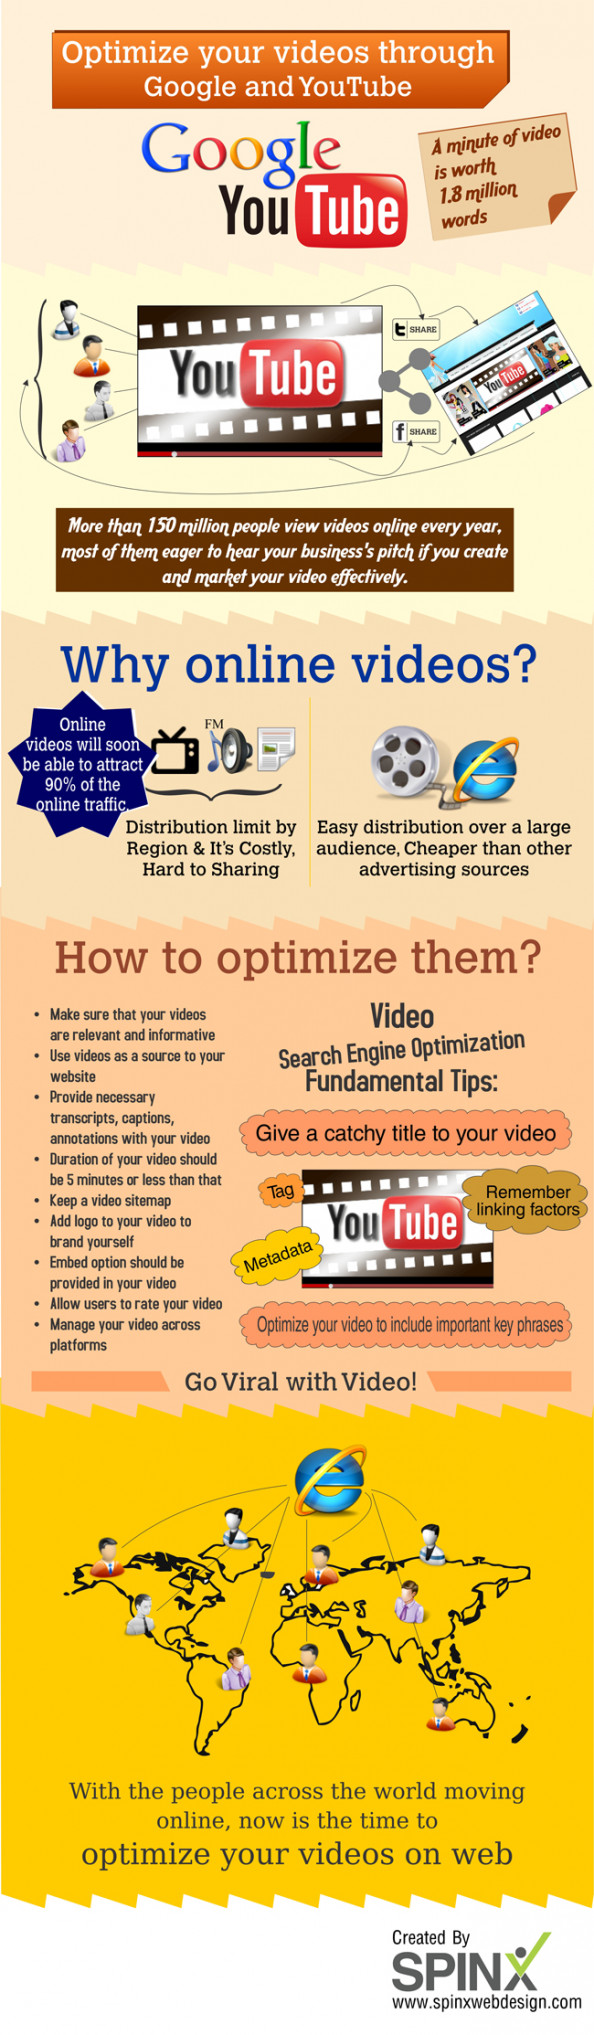 Online Video Marketing through Google and YouTube